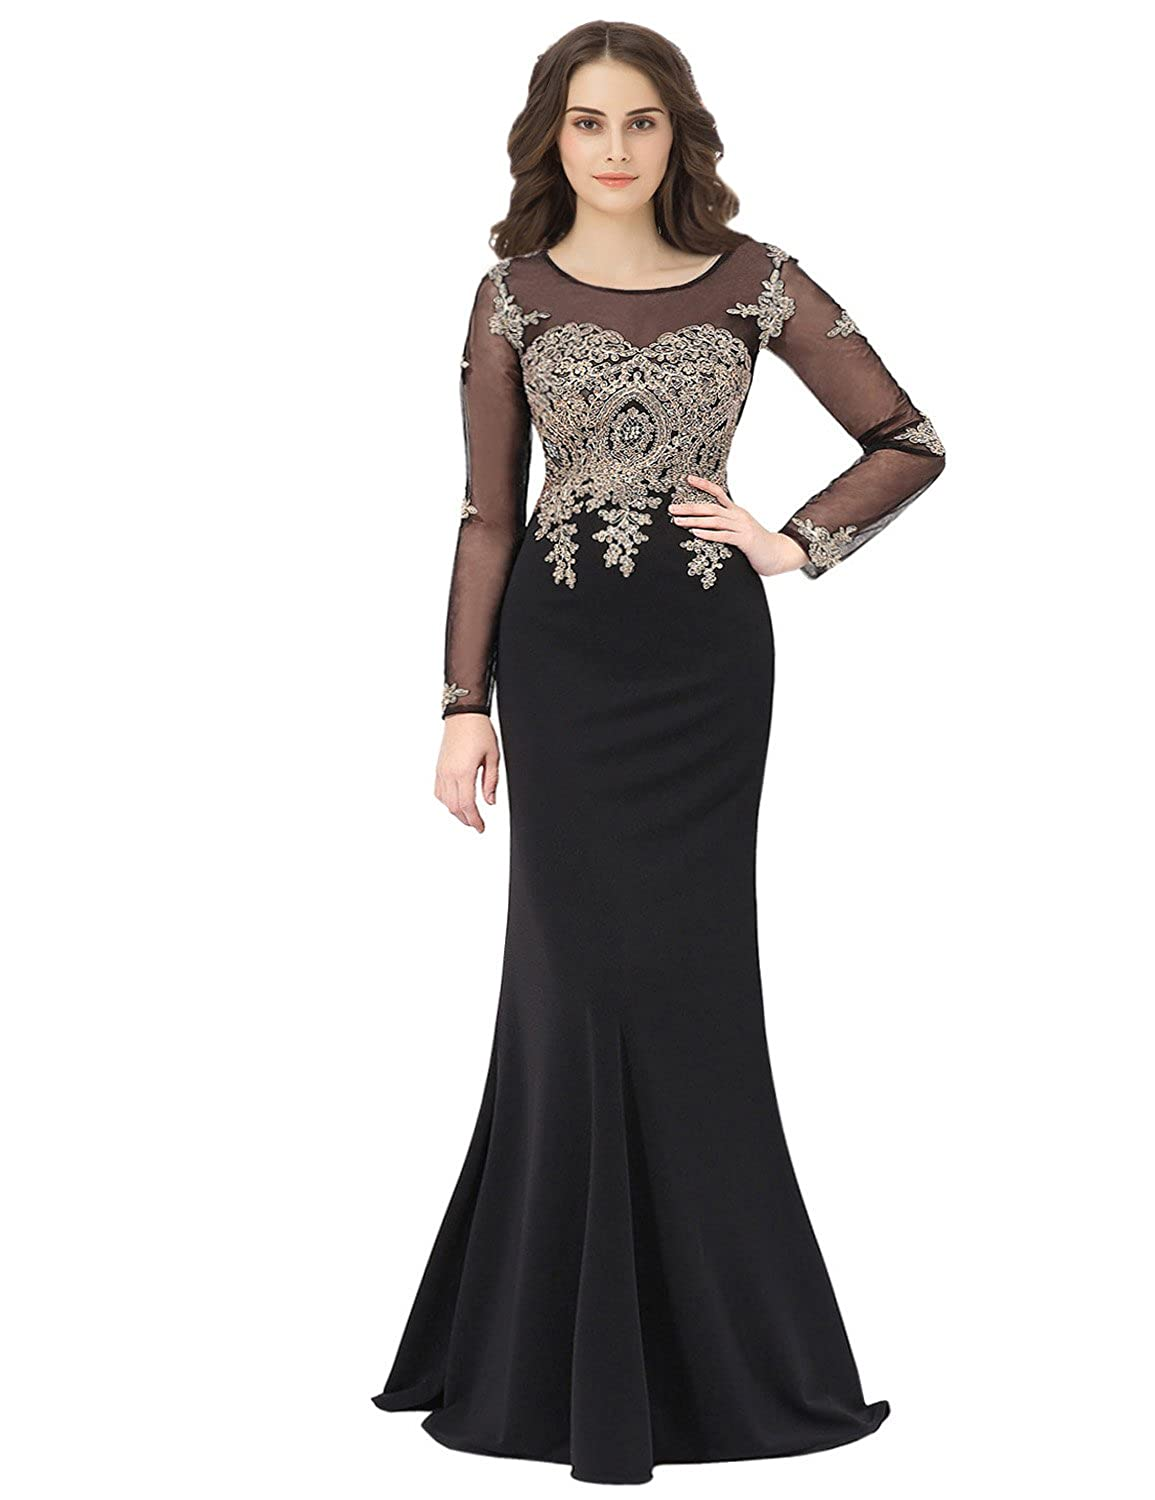 0dc8a62ba8 Formal Mother of The Bride Groom Outfits Evening Wedding Dresses with Long  Sleeves Tulle Chiffon Zipper Padded Long sleeves Full lined with pearls bone